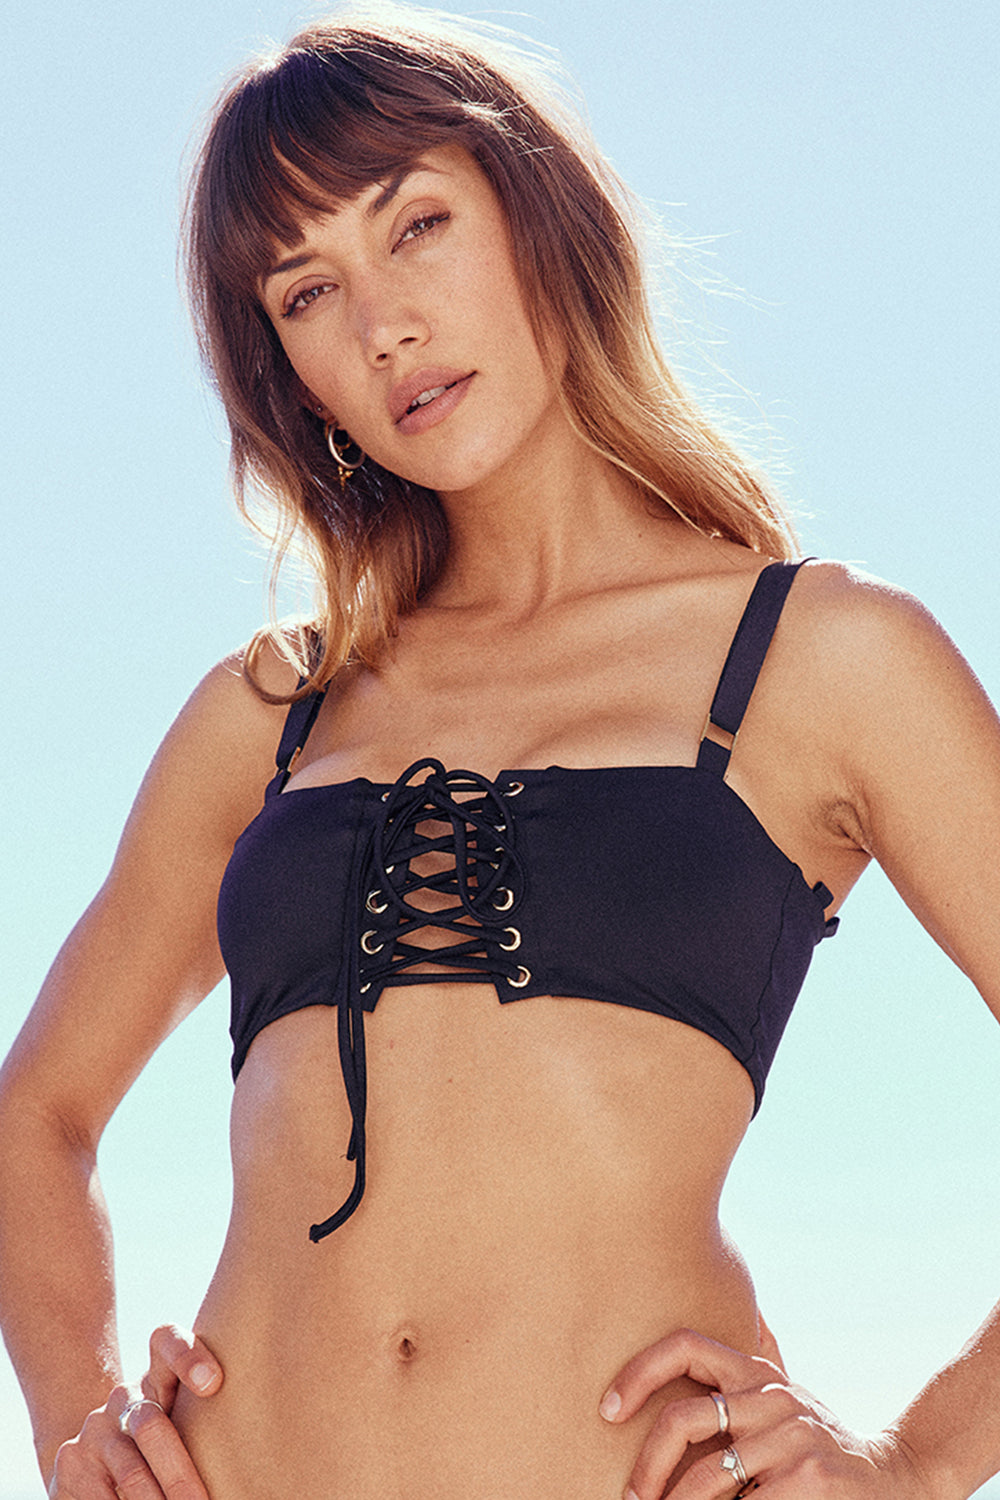 Black lace-up bandeau vintage inspired bikini top eco-friendly & sustainable fabric